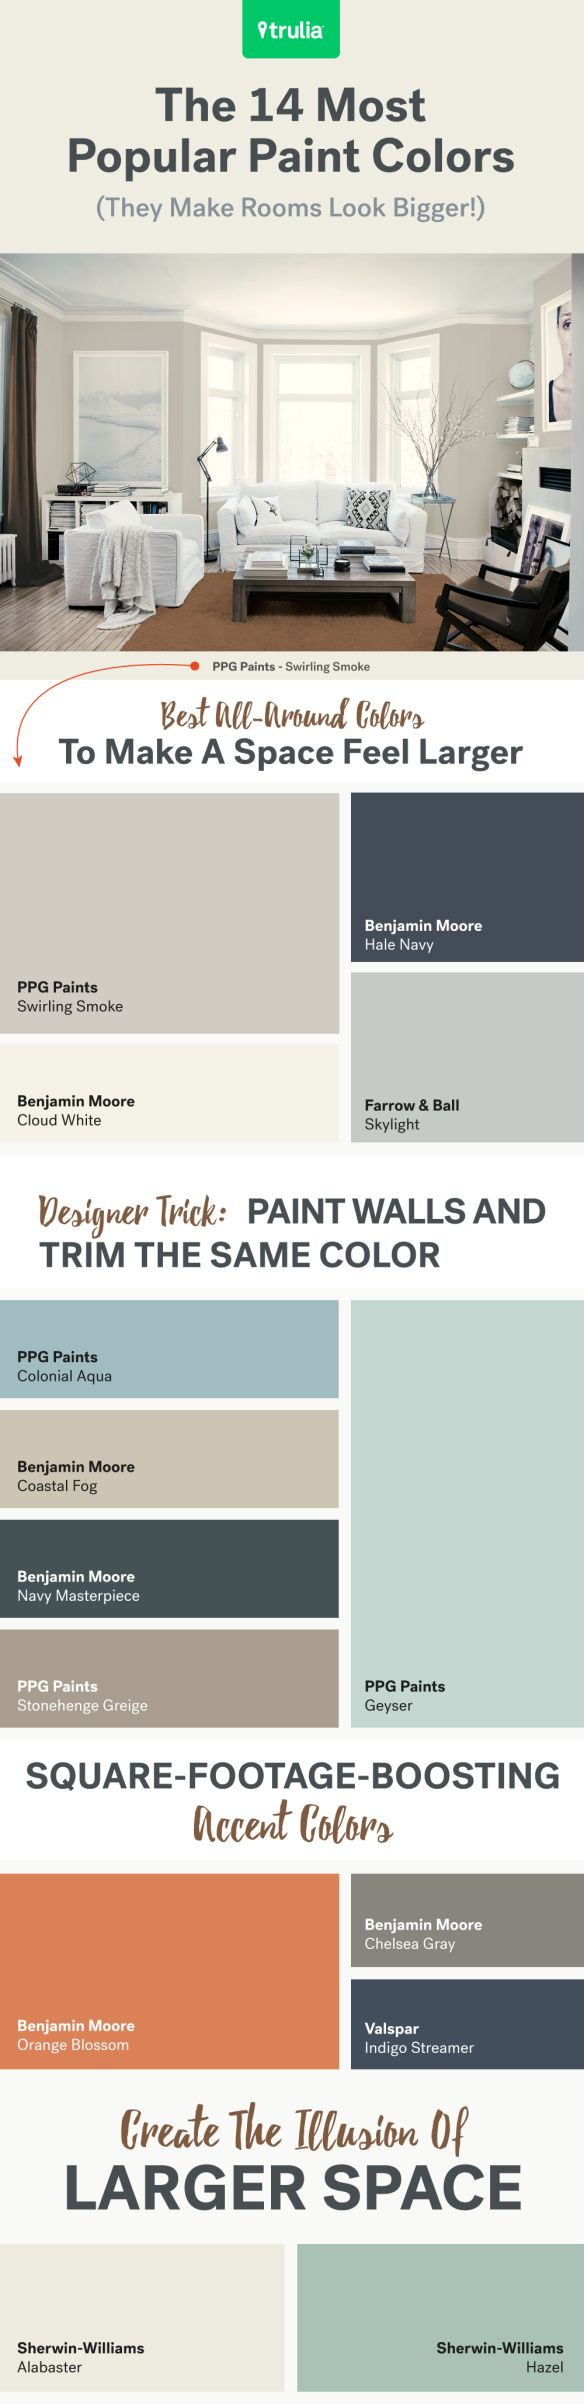 The 14 Most Popular Paint Colors They Make A Room Look Bigger